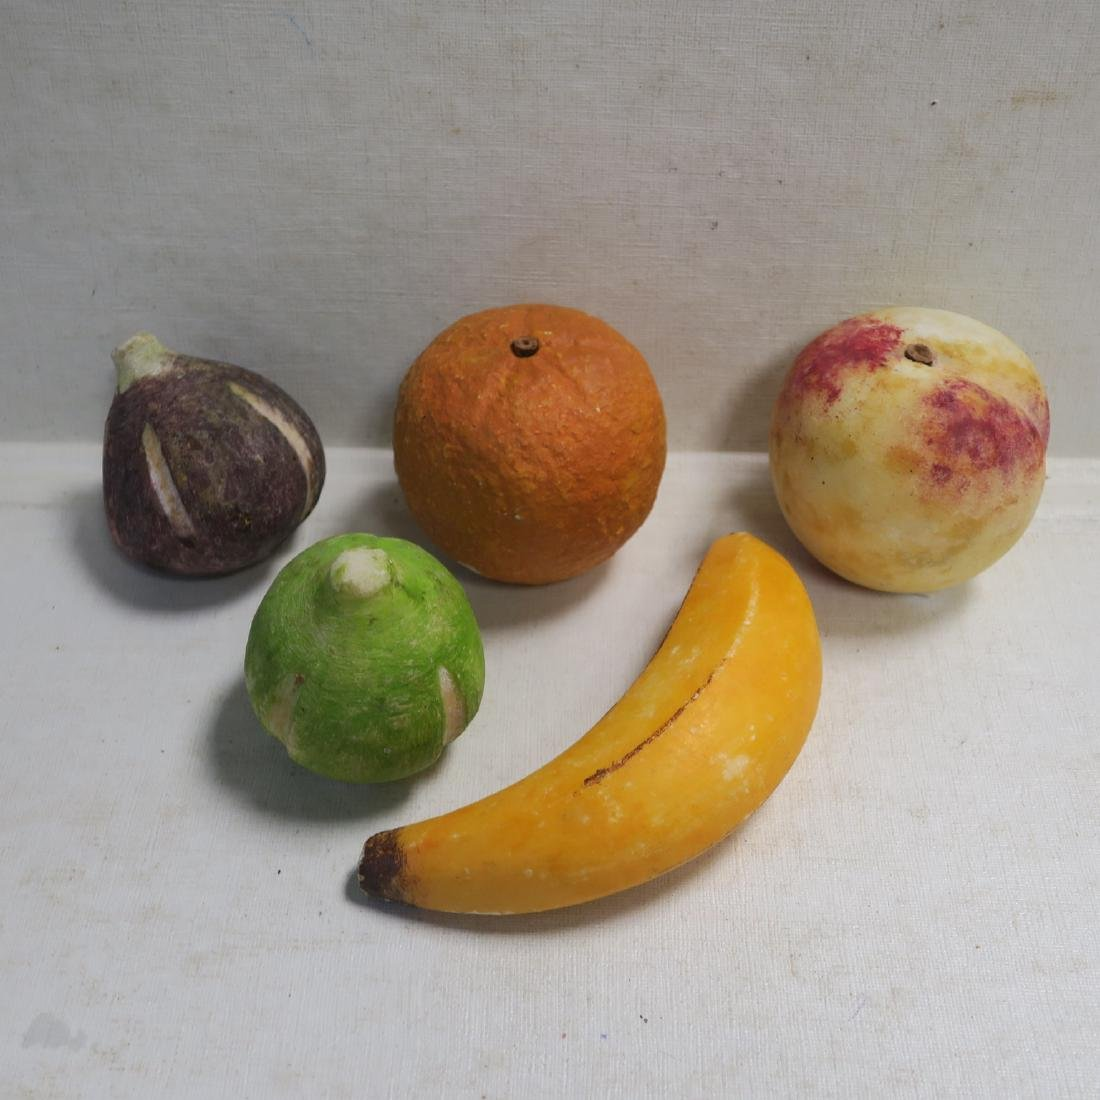 Five Pieces of Stone Fruit: